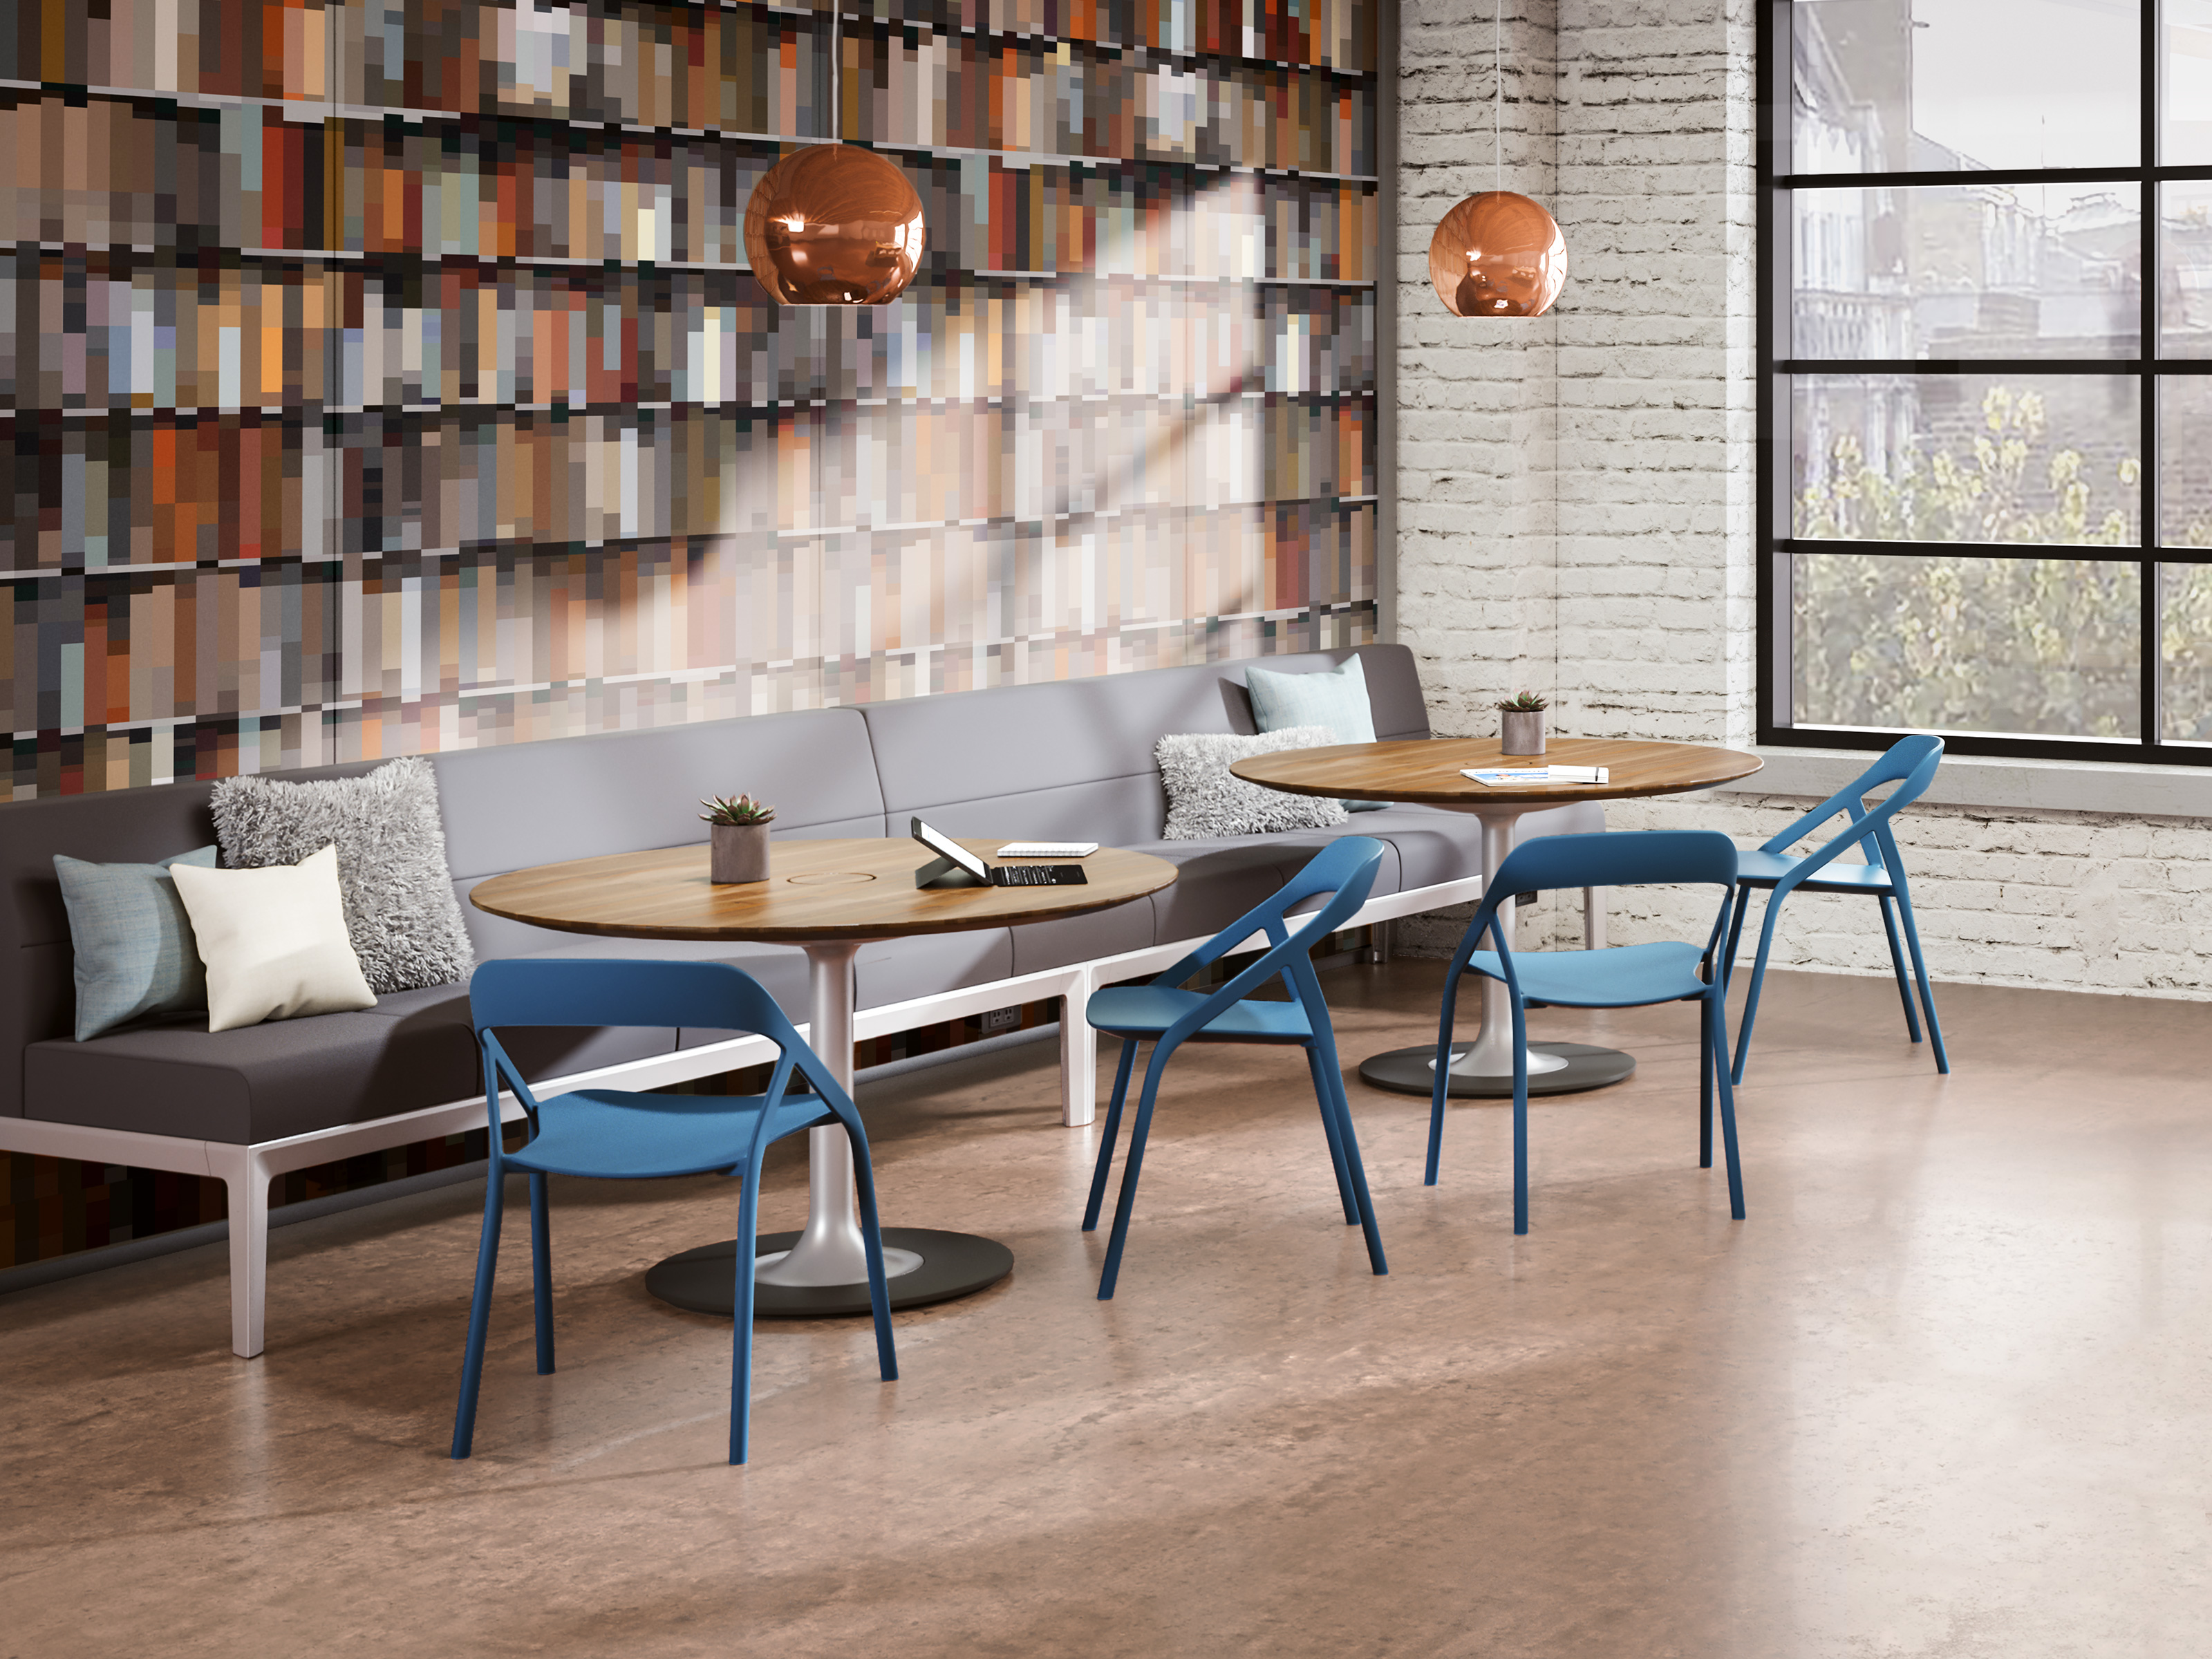 steelcase amia chair recall canvas covers auckland media